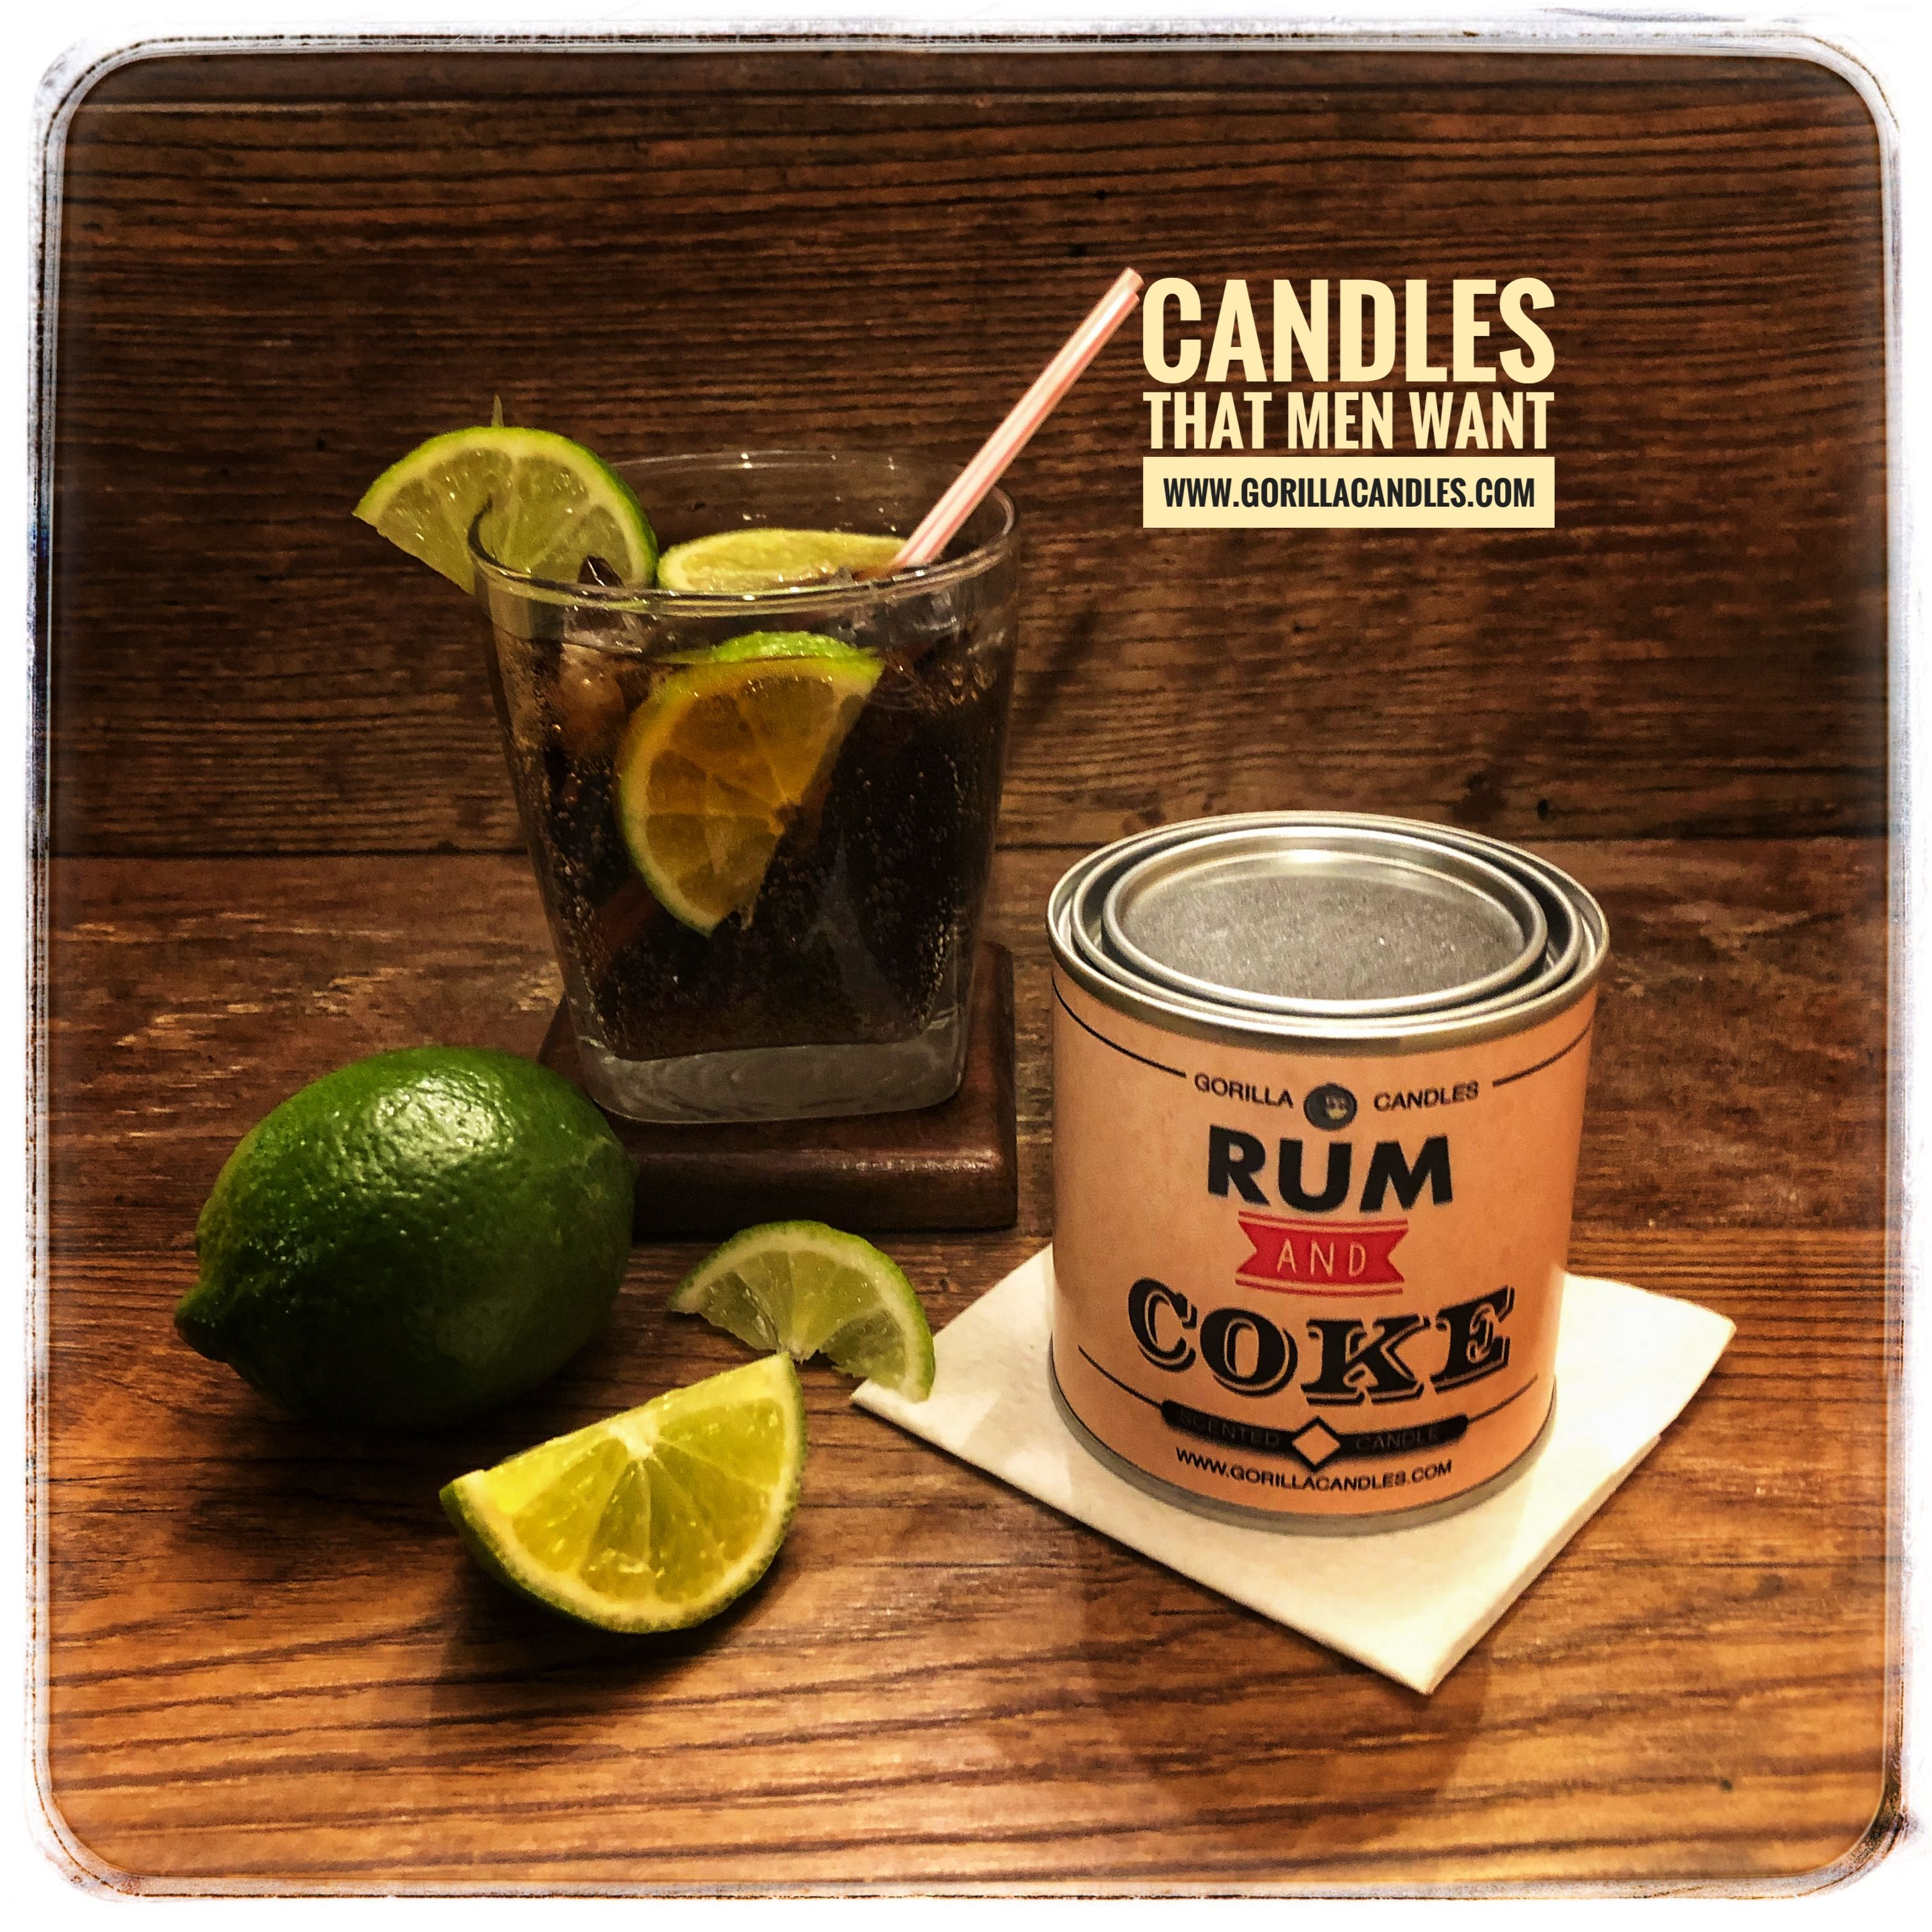 Rum and Coke Candle in 2020 | Rum, Man scented candles, Coke